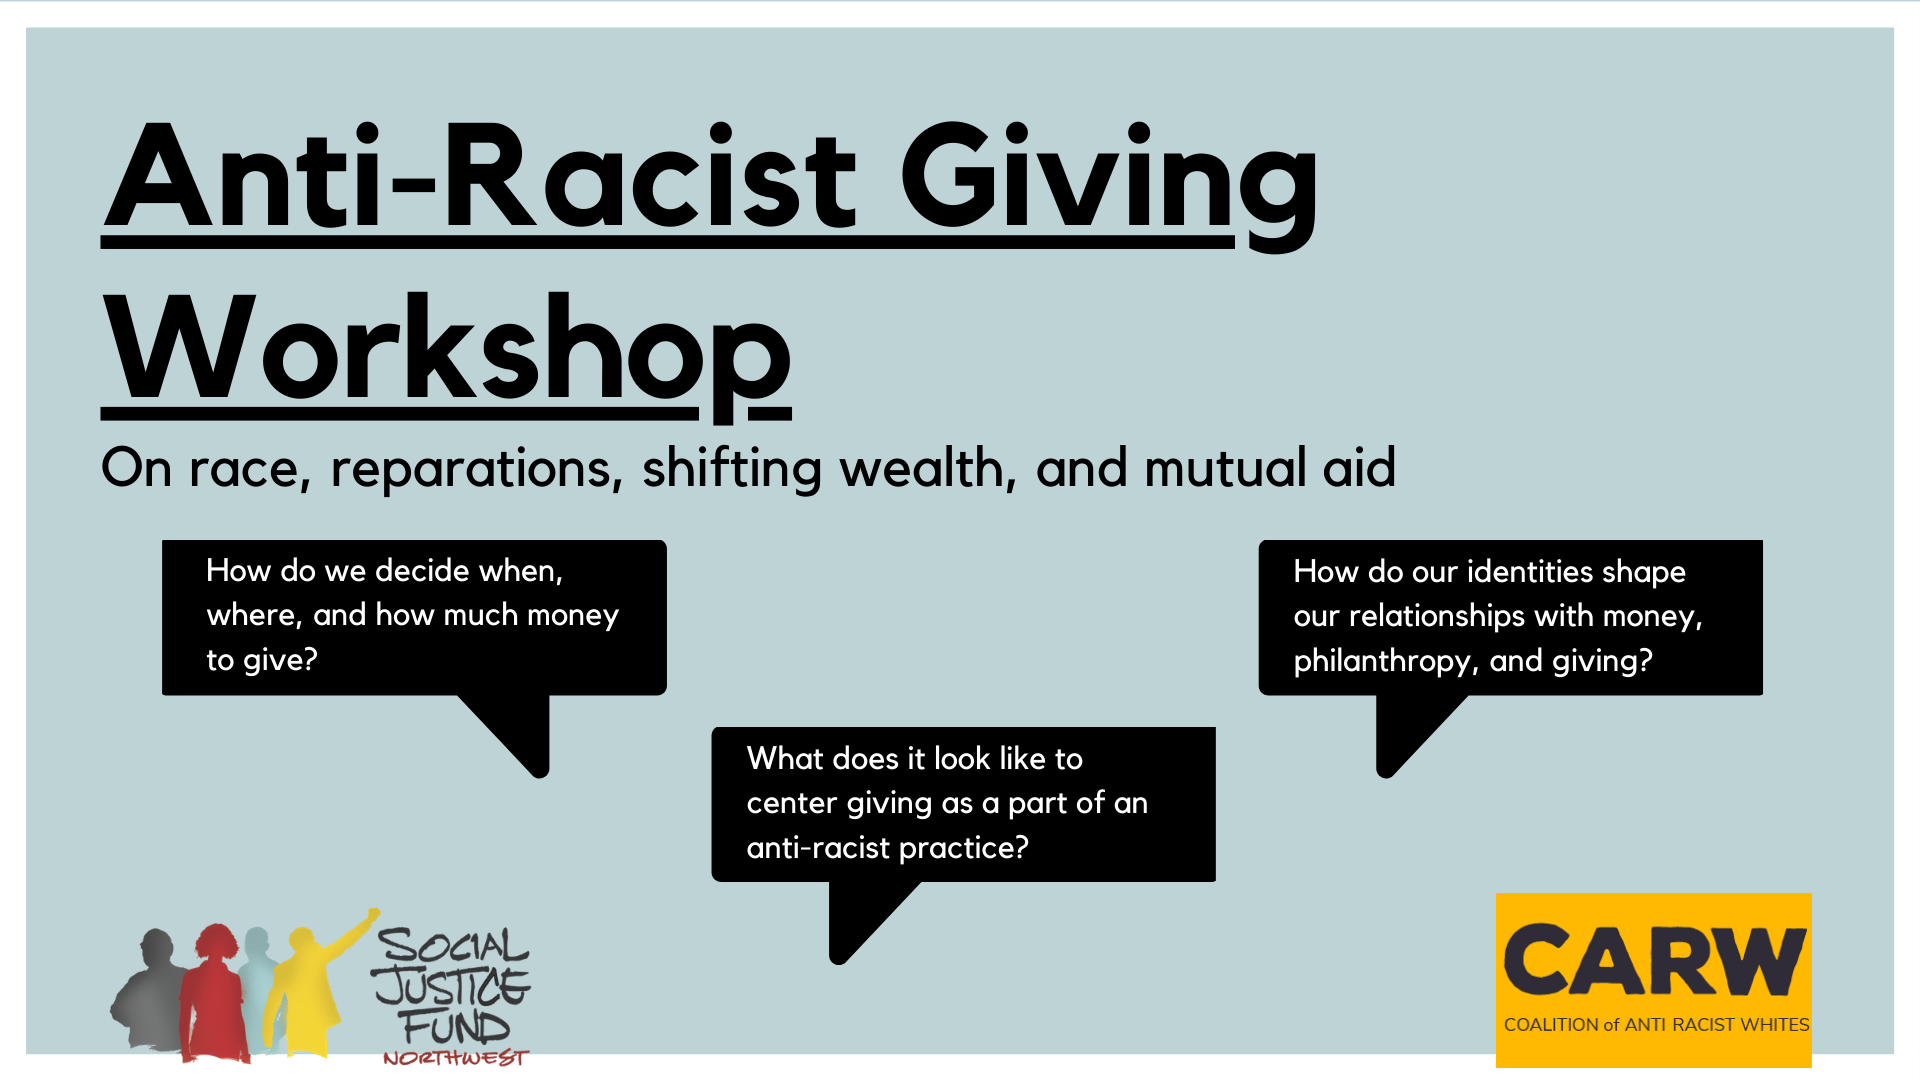 Rectangular image with light blue background. Black text reads Anti Racist Giving Workshop. On race, reparations, shifting wealth, and mutual aid.